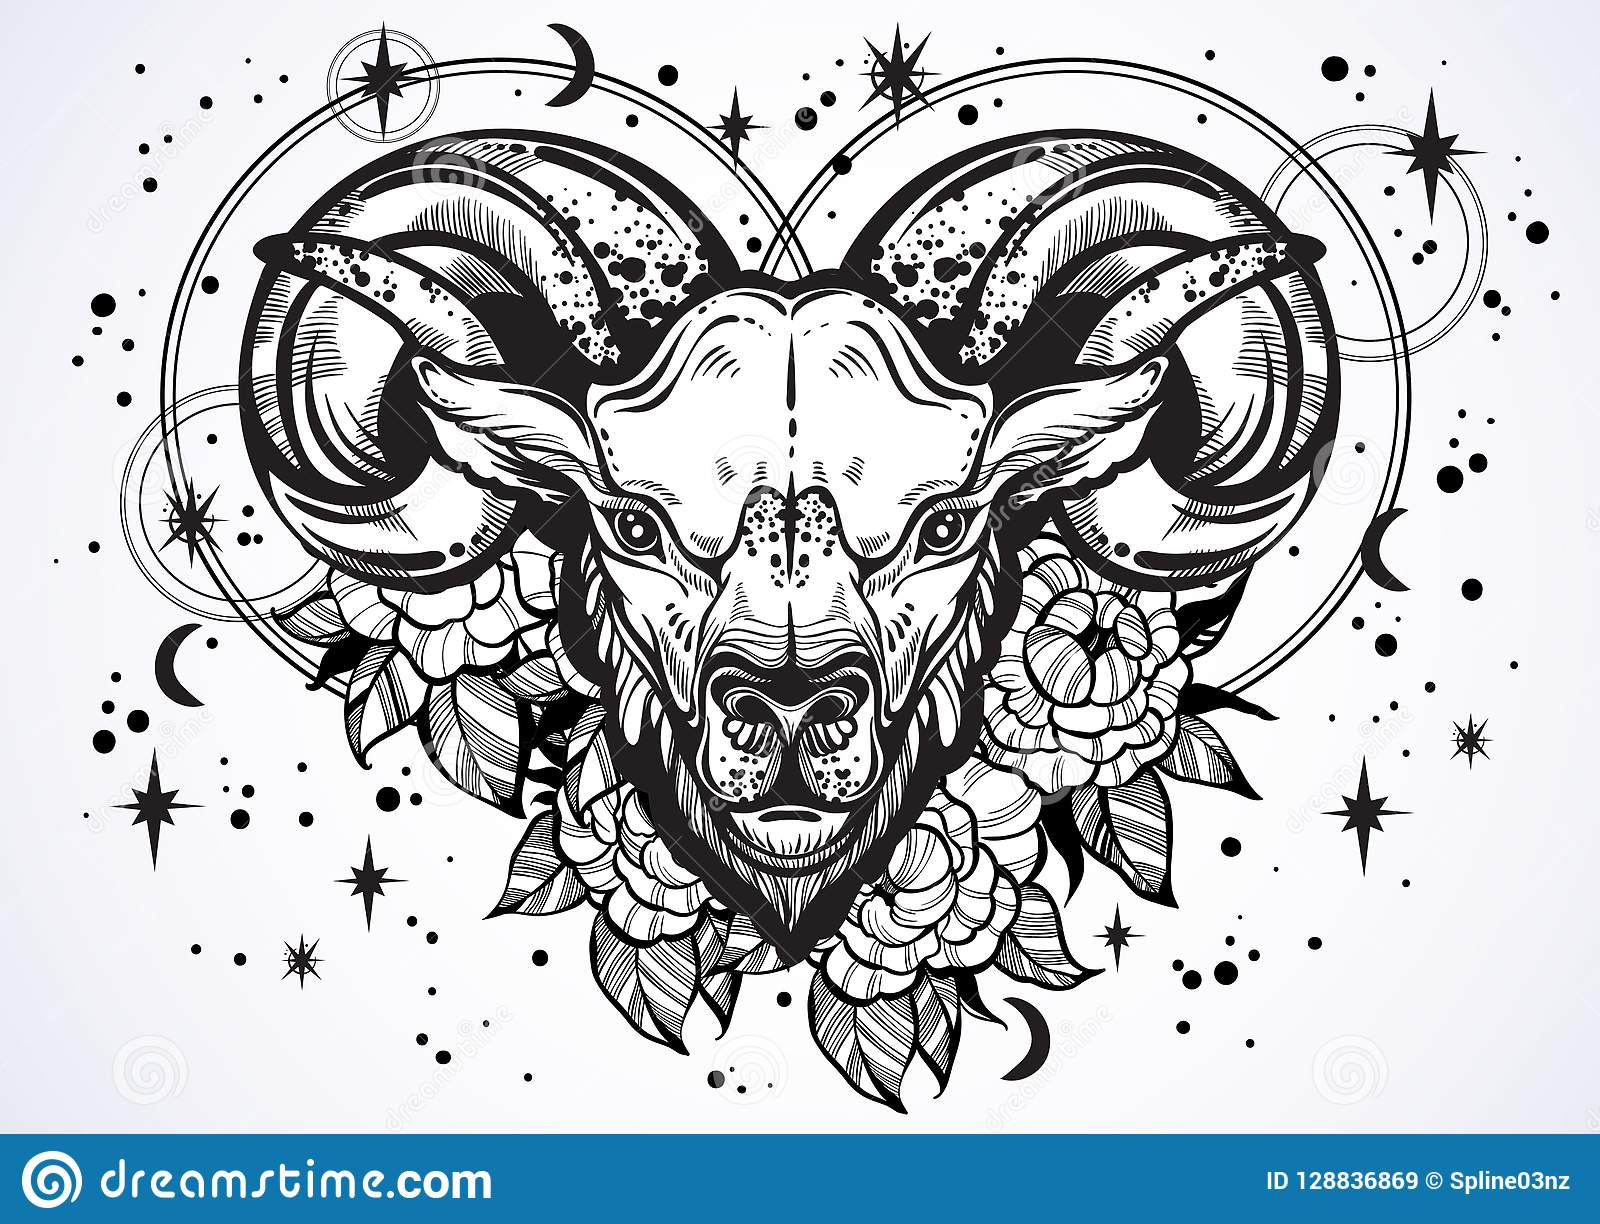 ecb69bf12 Hand-drawn beautiful artwork of a ram with peony flowers and astrology  signs around. Aries, zodiac sign. Trendy vector art.